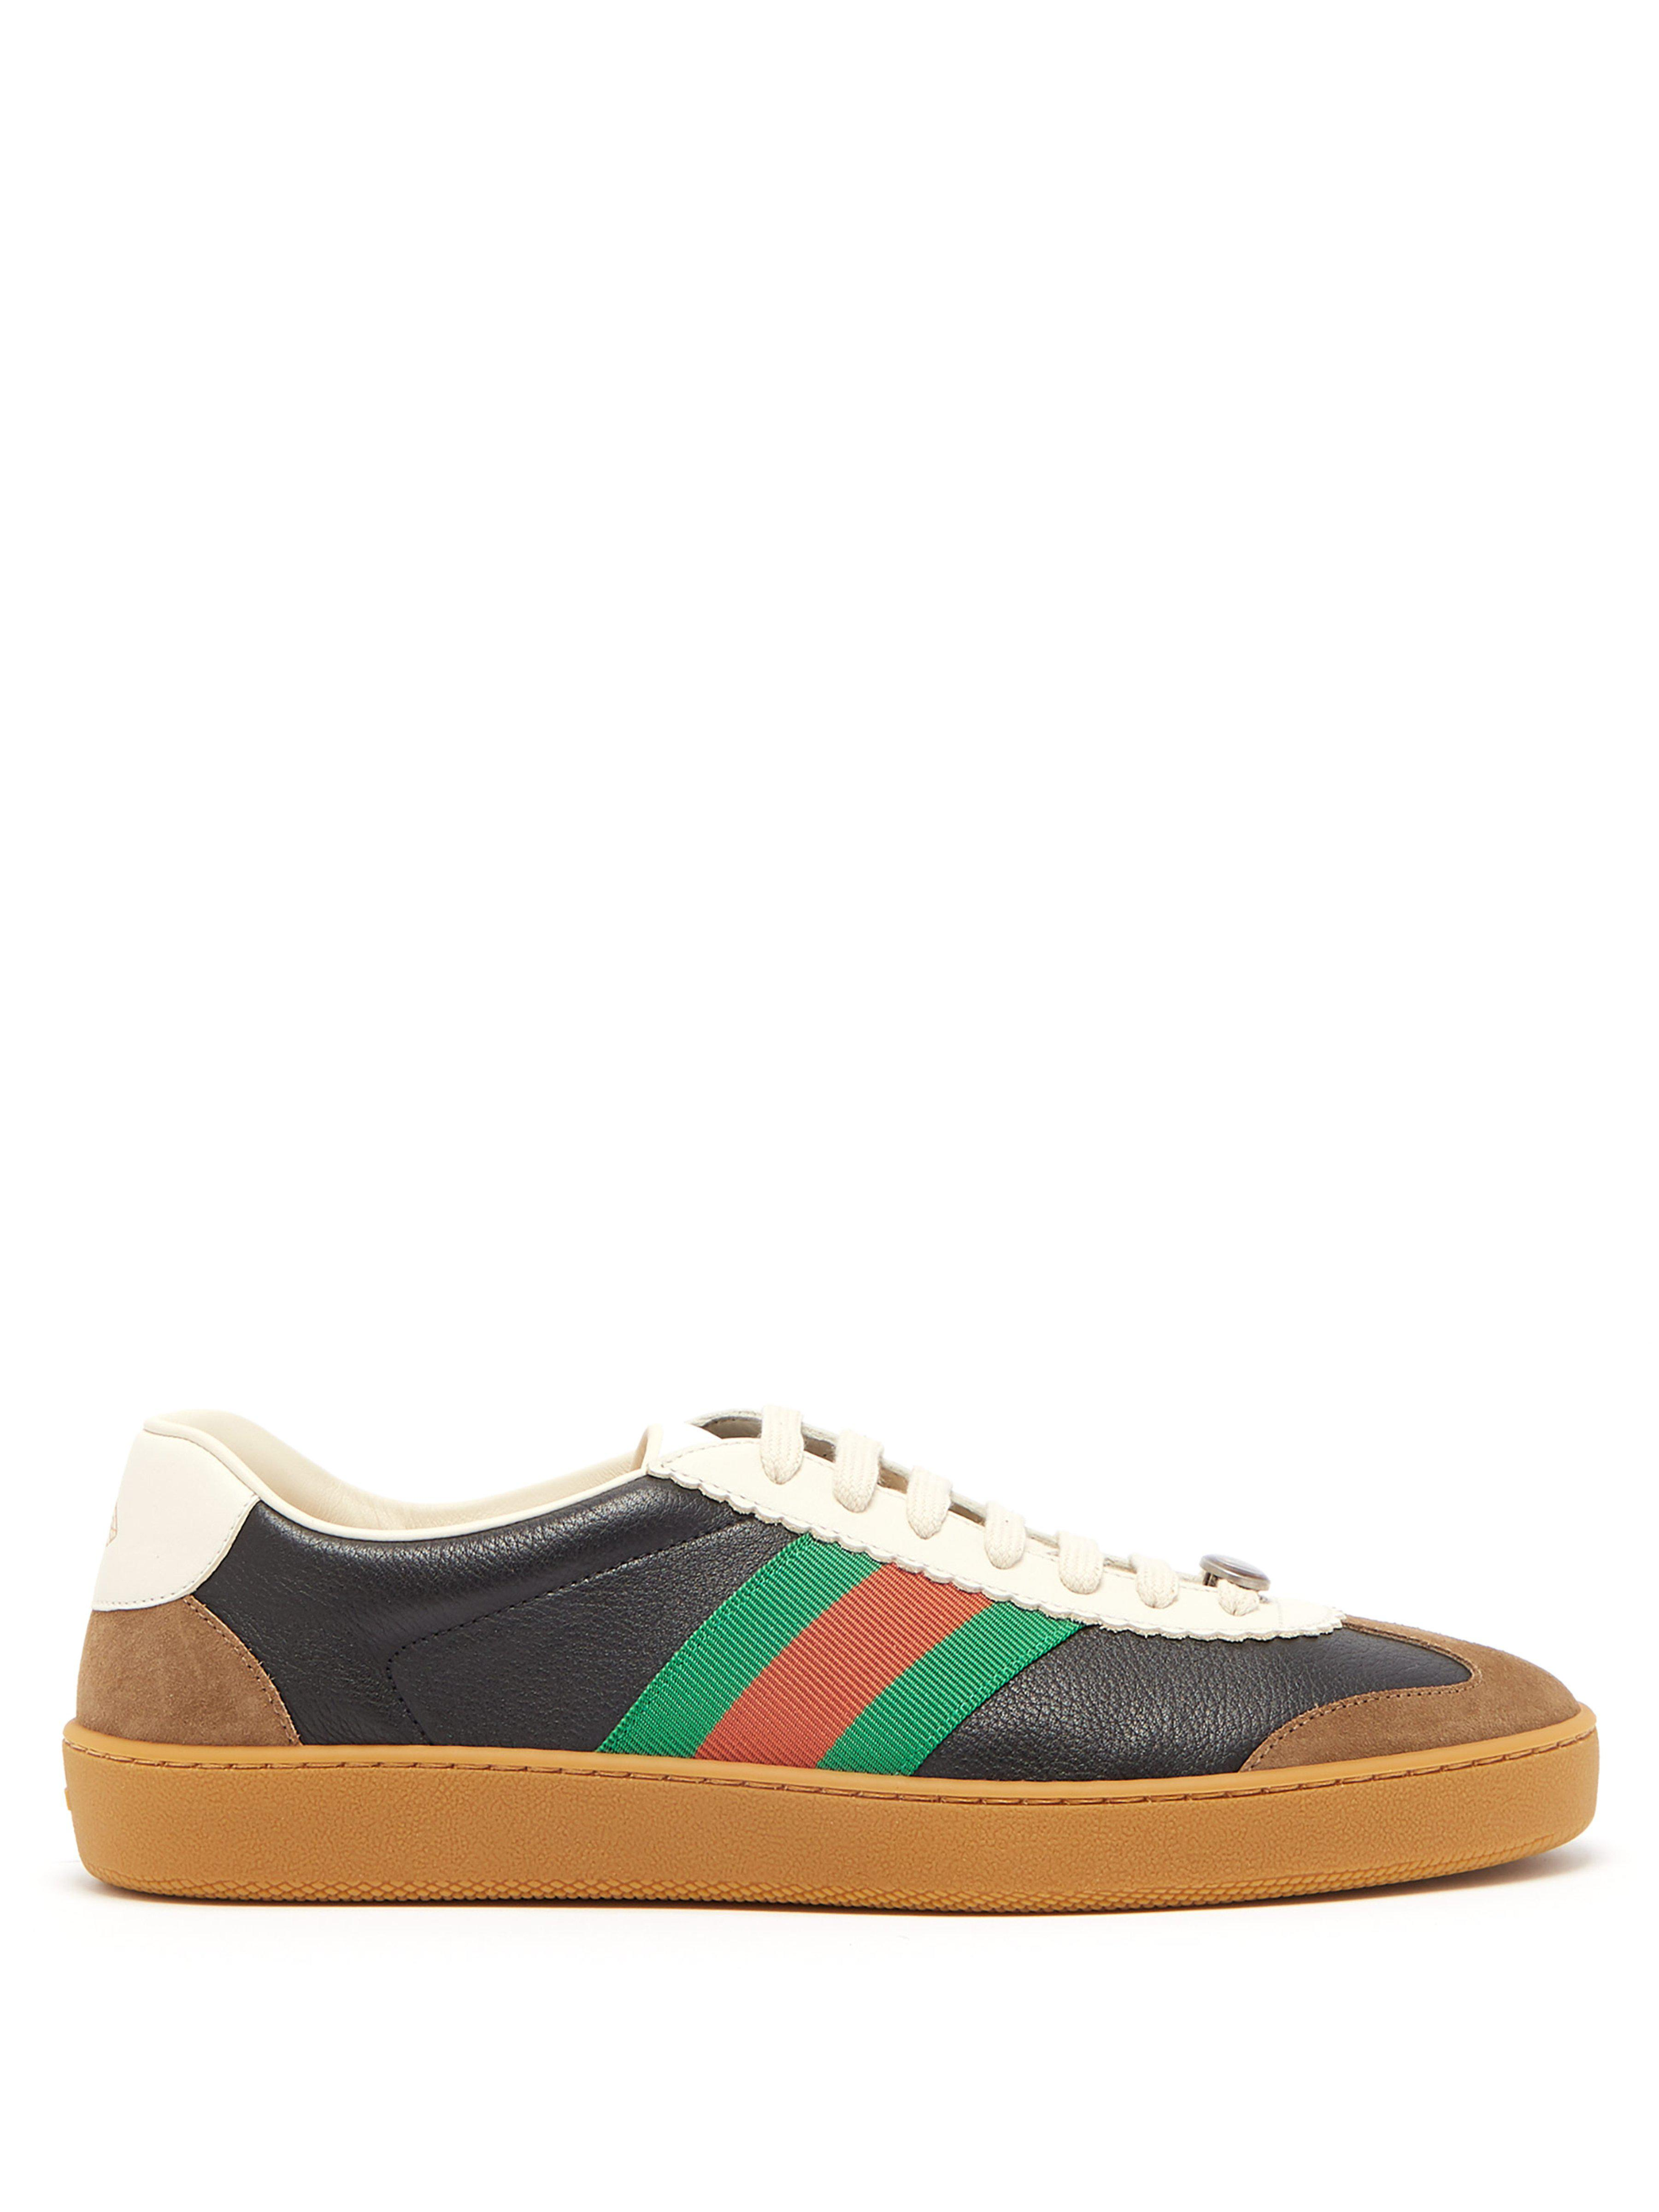 05ce53513 Gucci G74 Leather Low Top Trainers in Black for Men - Lyst